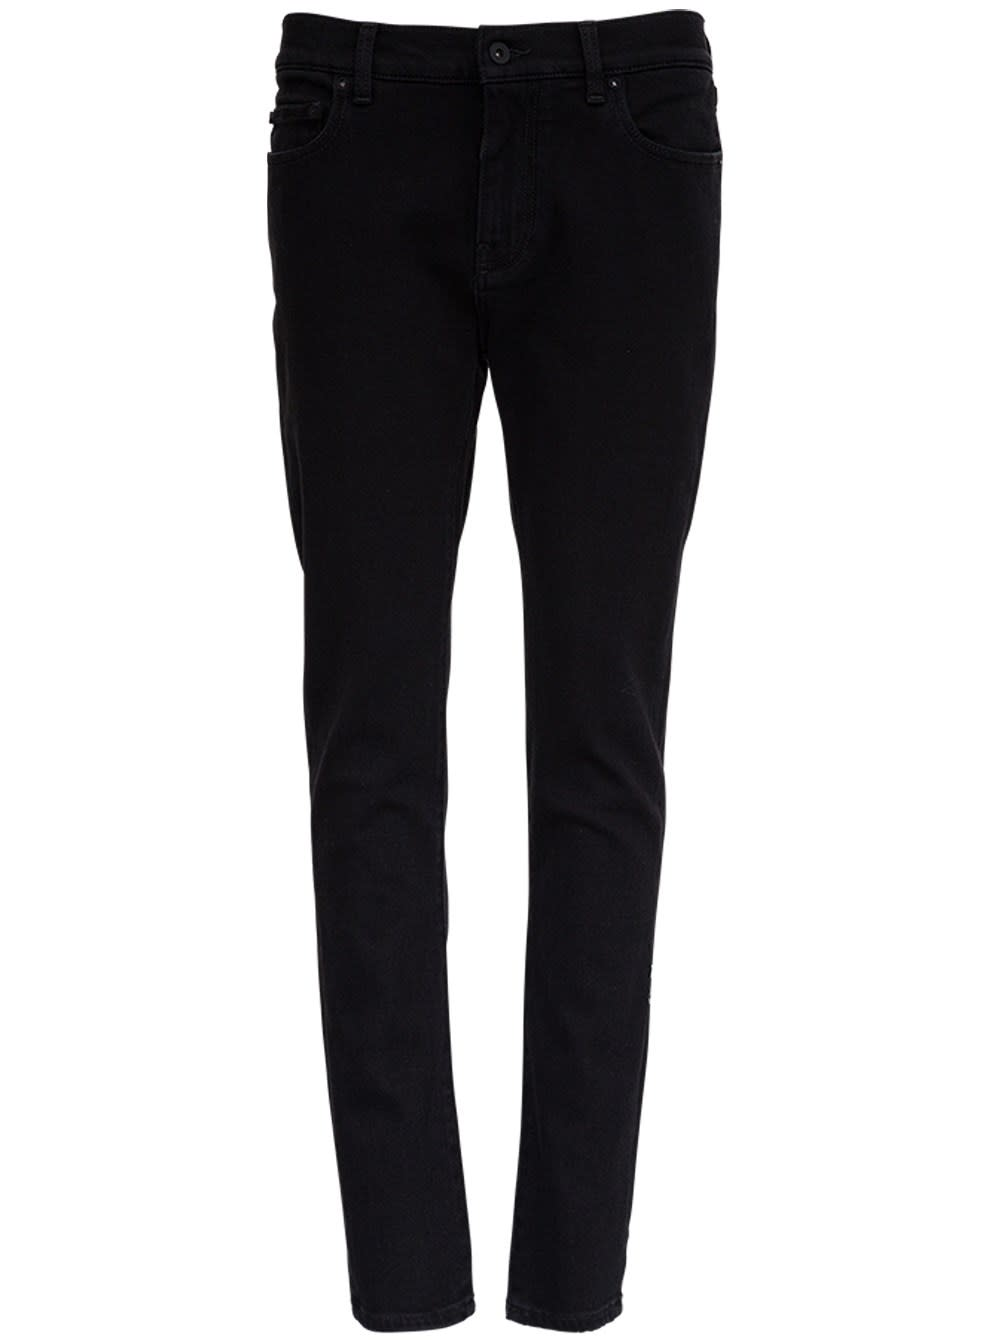 Off-White Black Jeans With Diagonals Detail